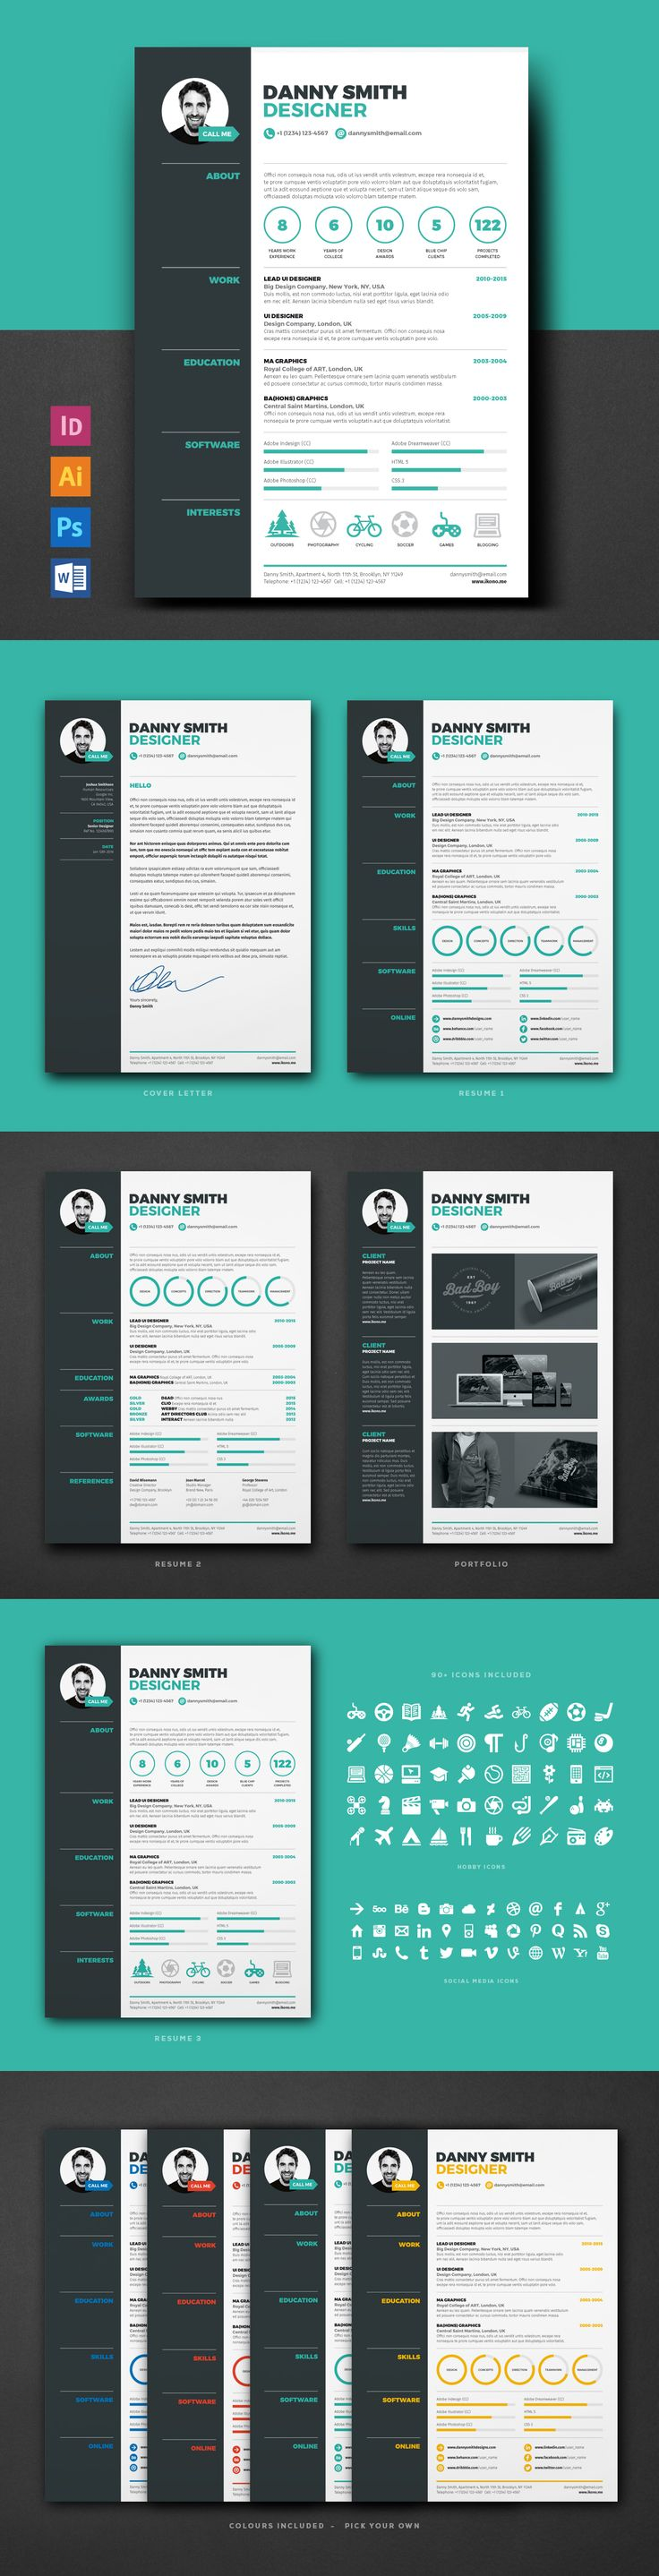 RESUME 3 features clean, functional and professional layout created to help recruiters focus on your relevant skills and experience. Perfect resume and cover letter are just a click away --> www.kickresume.com ]